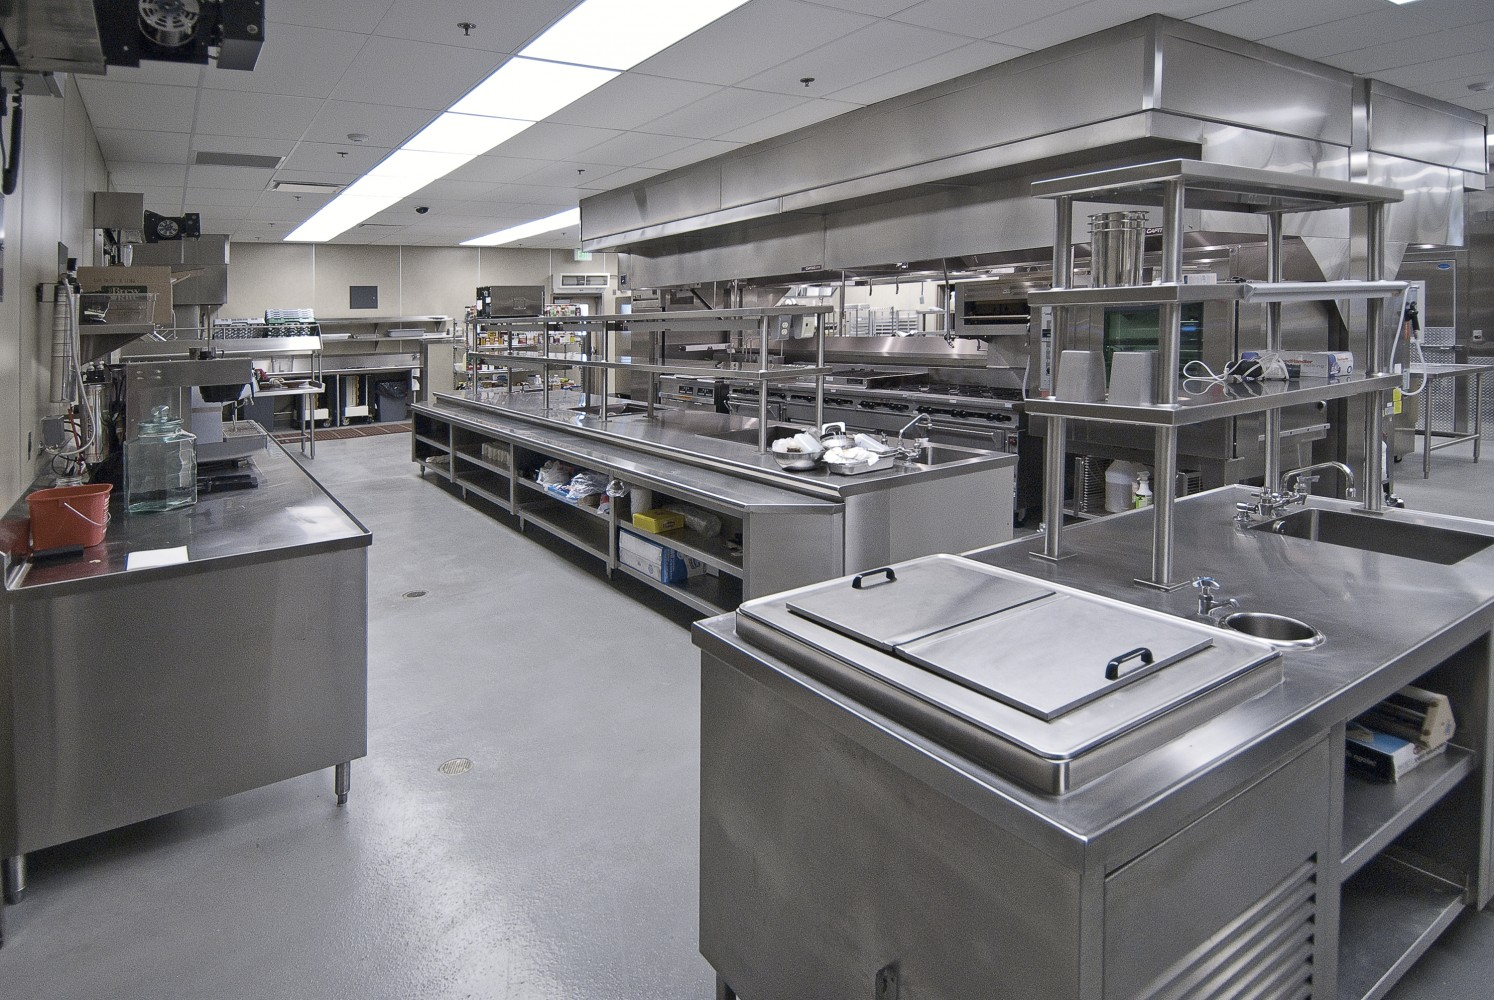 Commercial Kitchen Tile For Sale